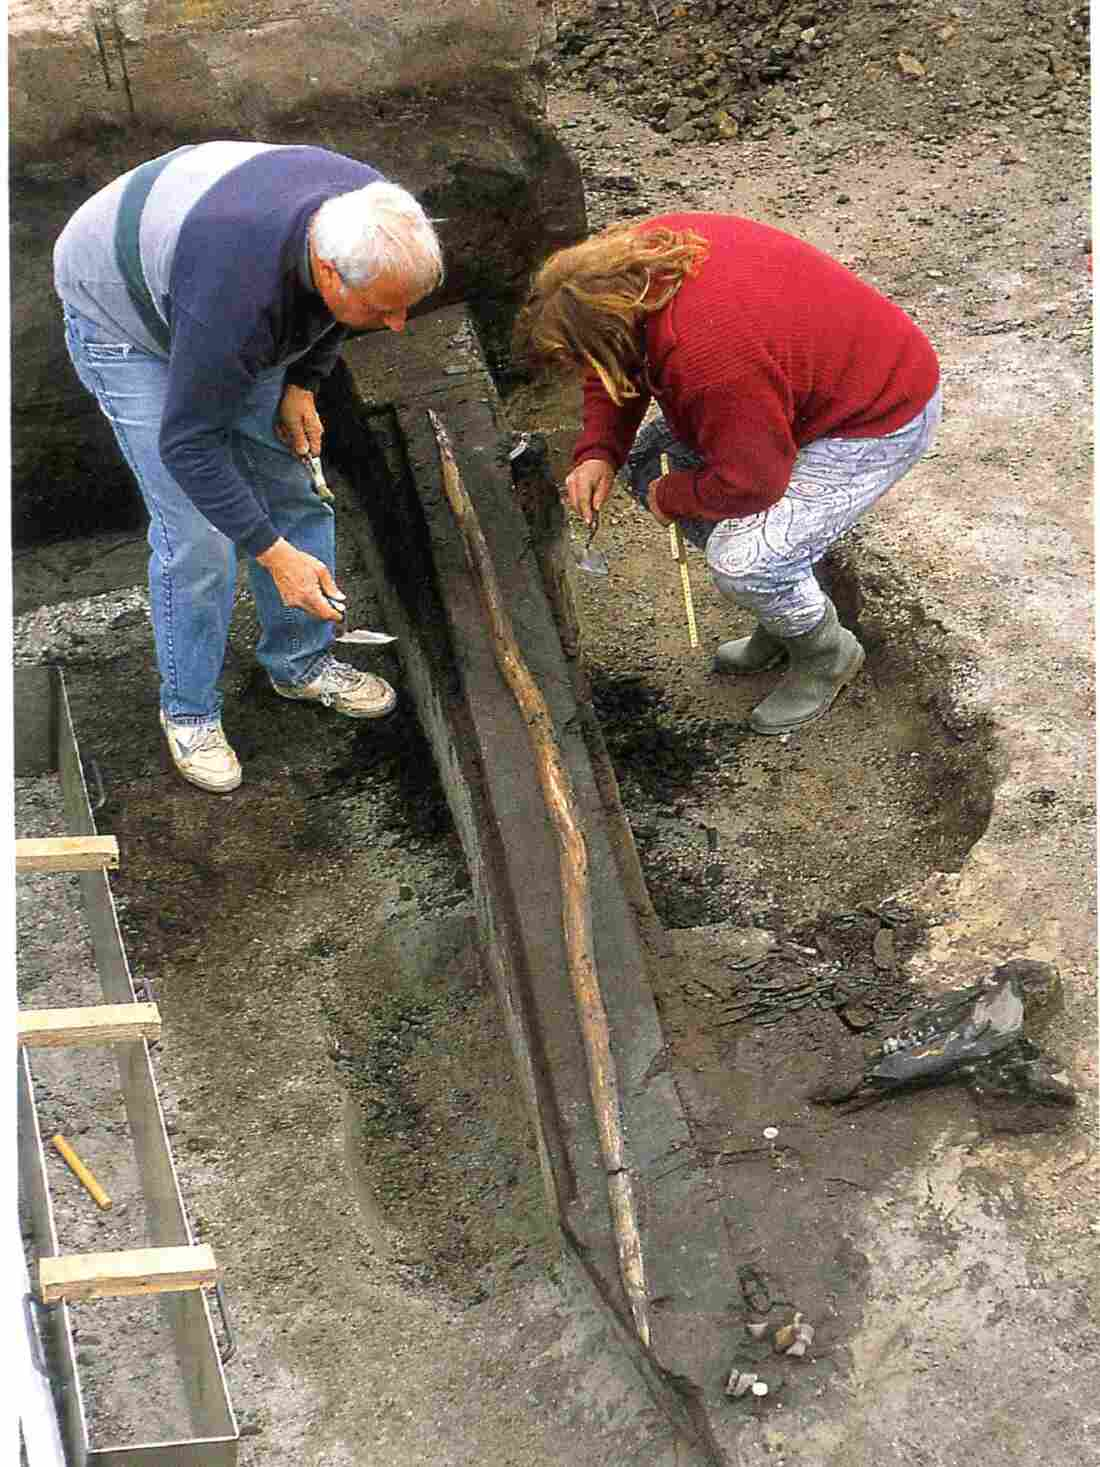 A wooden spear believed to be some 400,000 years old is unearthed in a dig site in Germany in the mid-1990s.